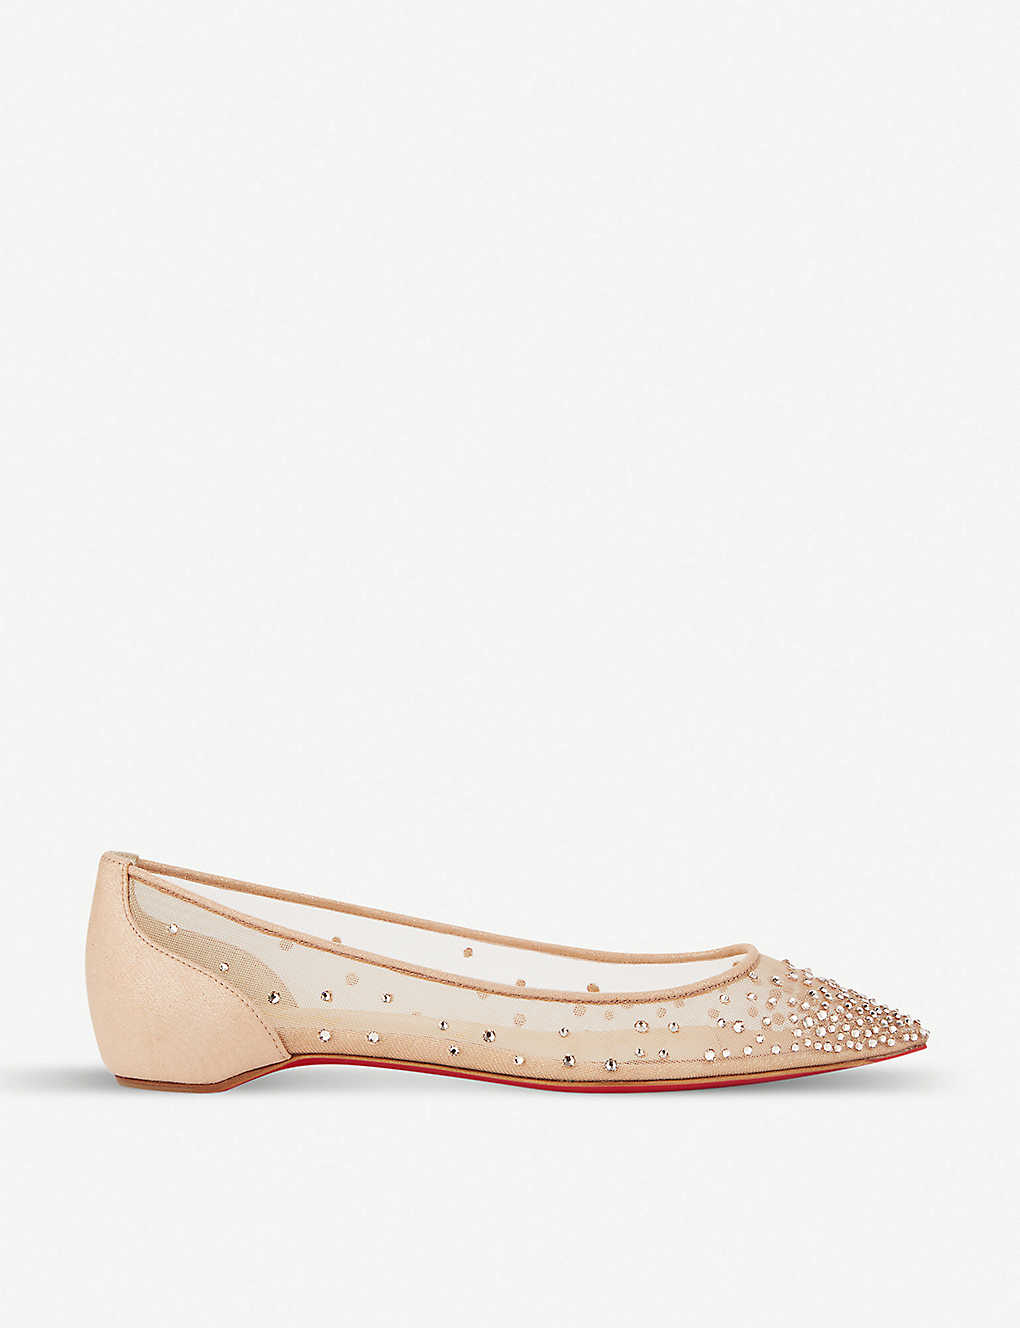 02ab0884822 Follies strass flat rete/suede